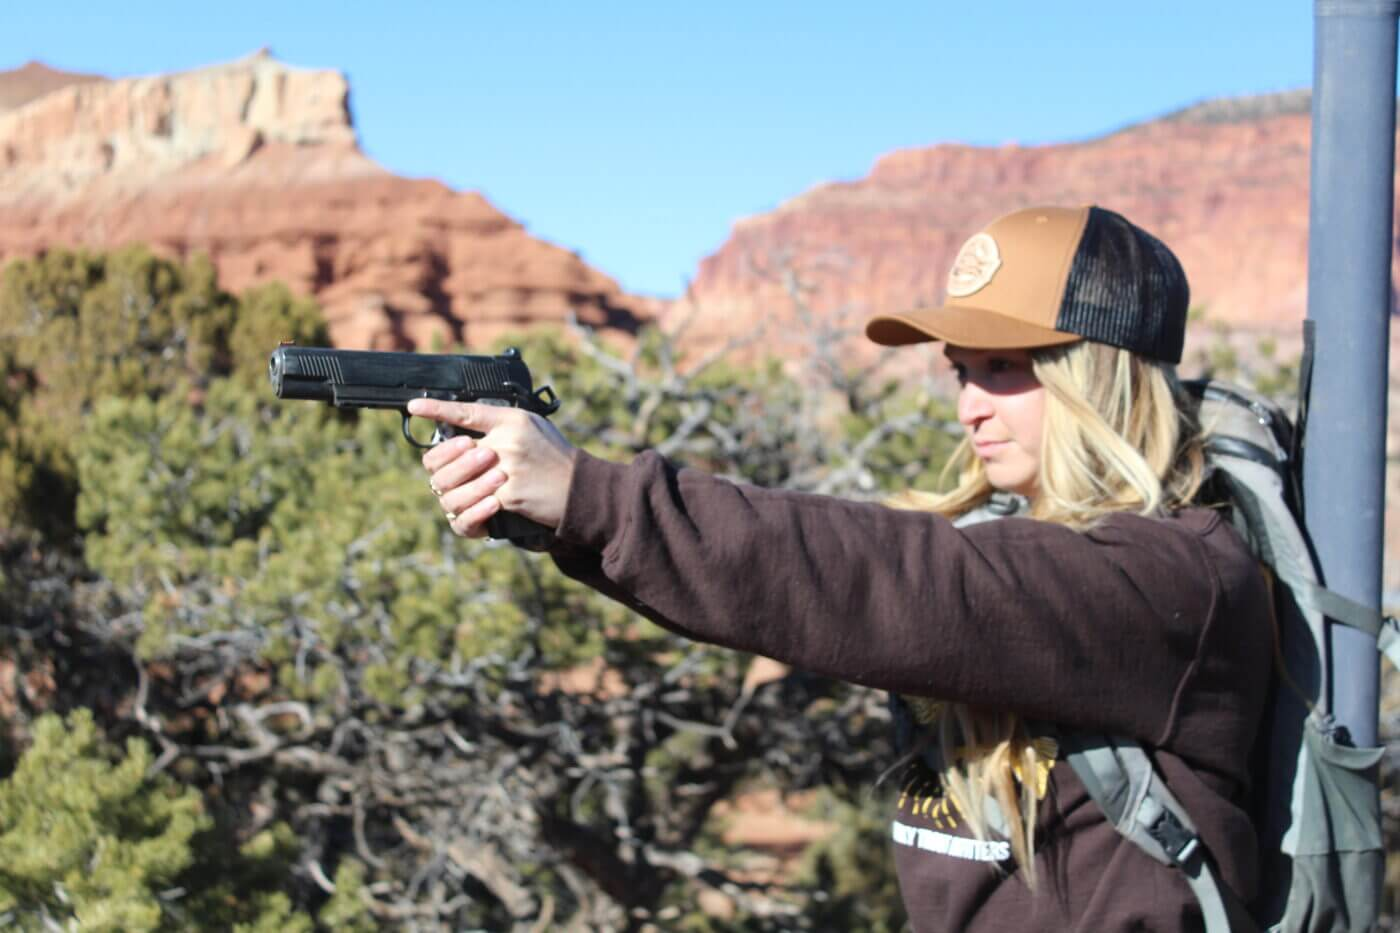 Blonde woman shooting a 1911 chambered for the 10mm cartridge